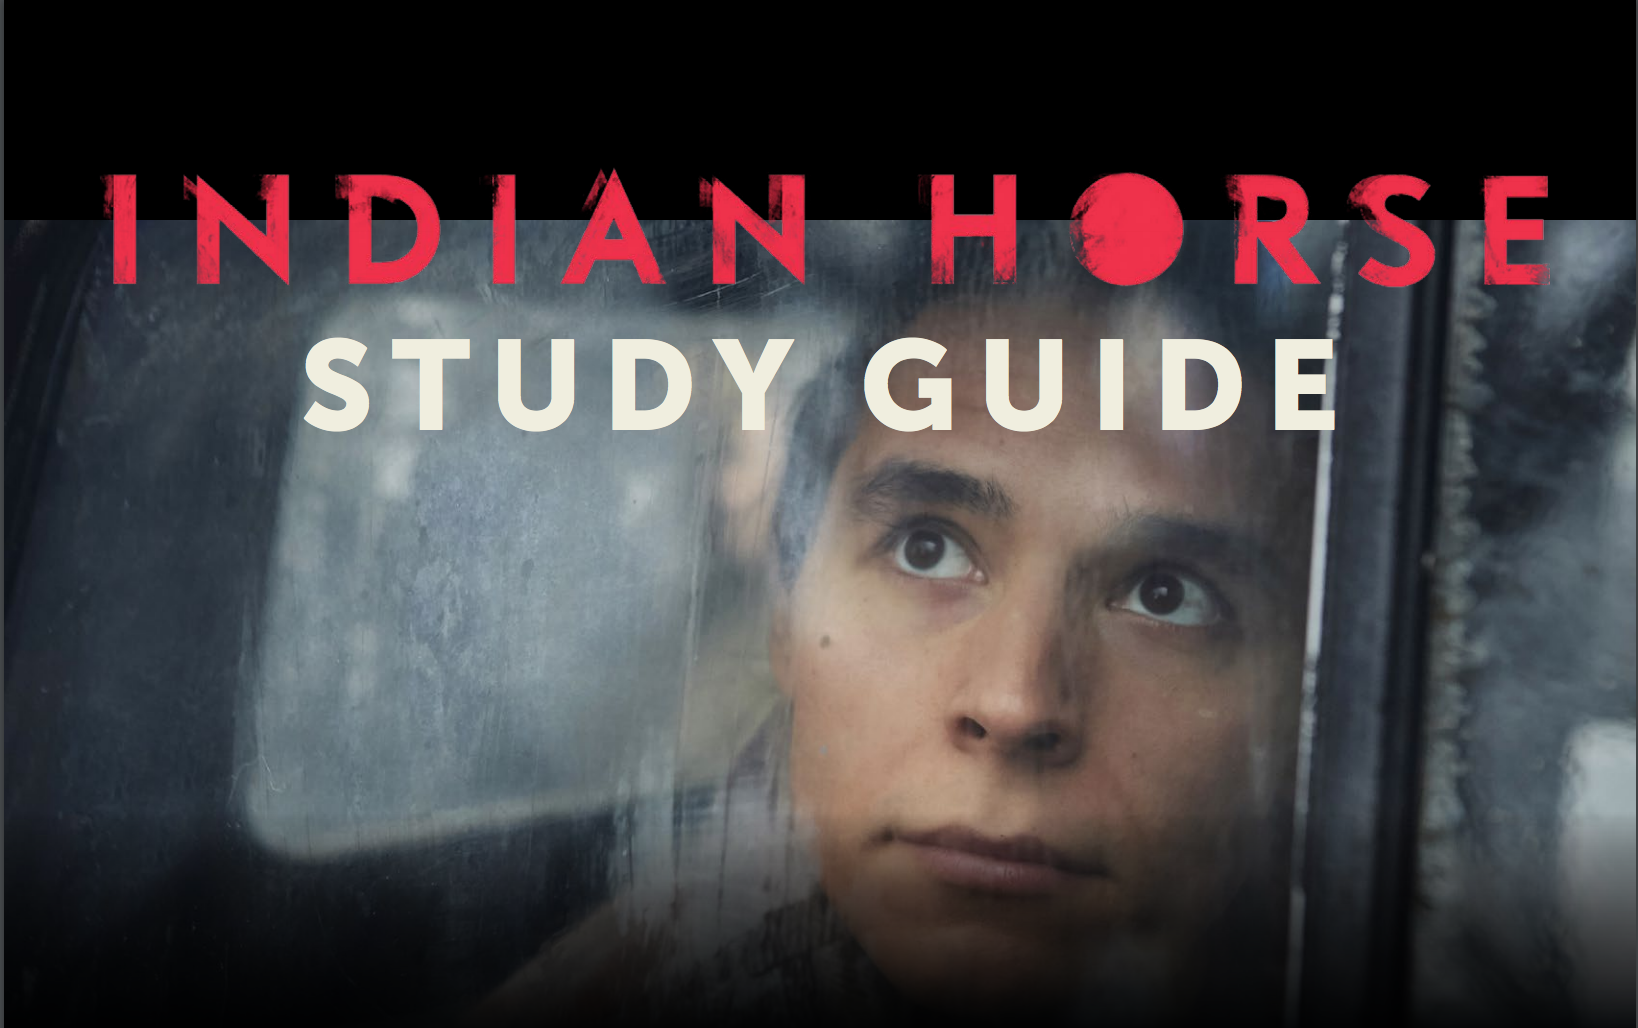 Indian Horse Study Guide